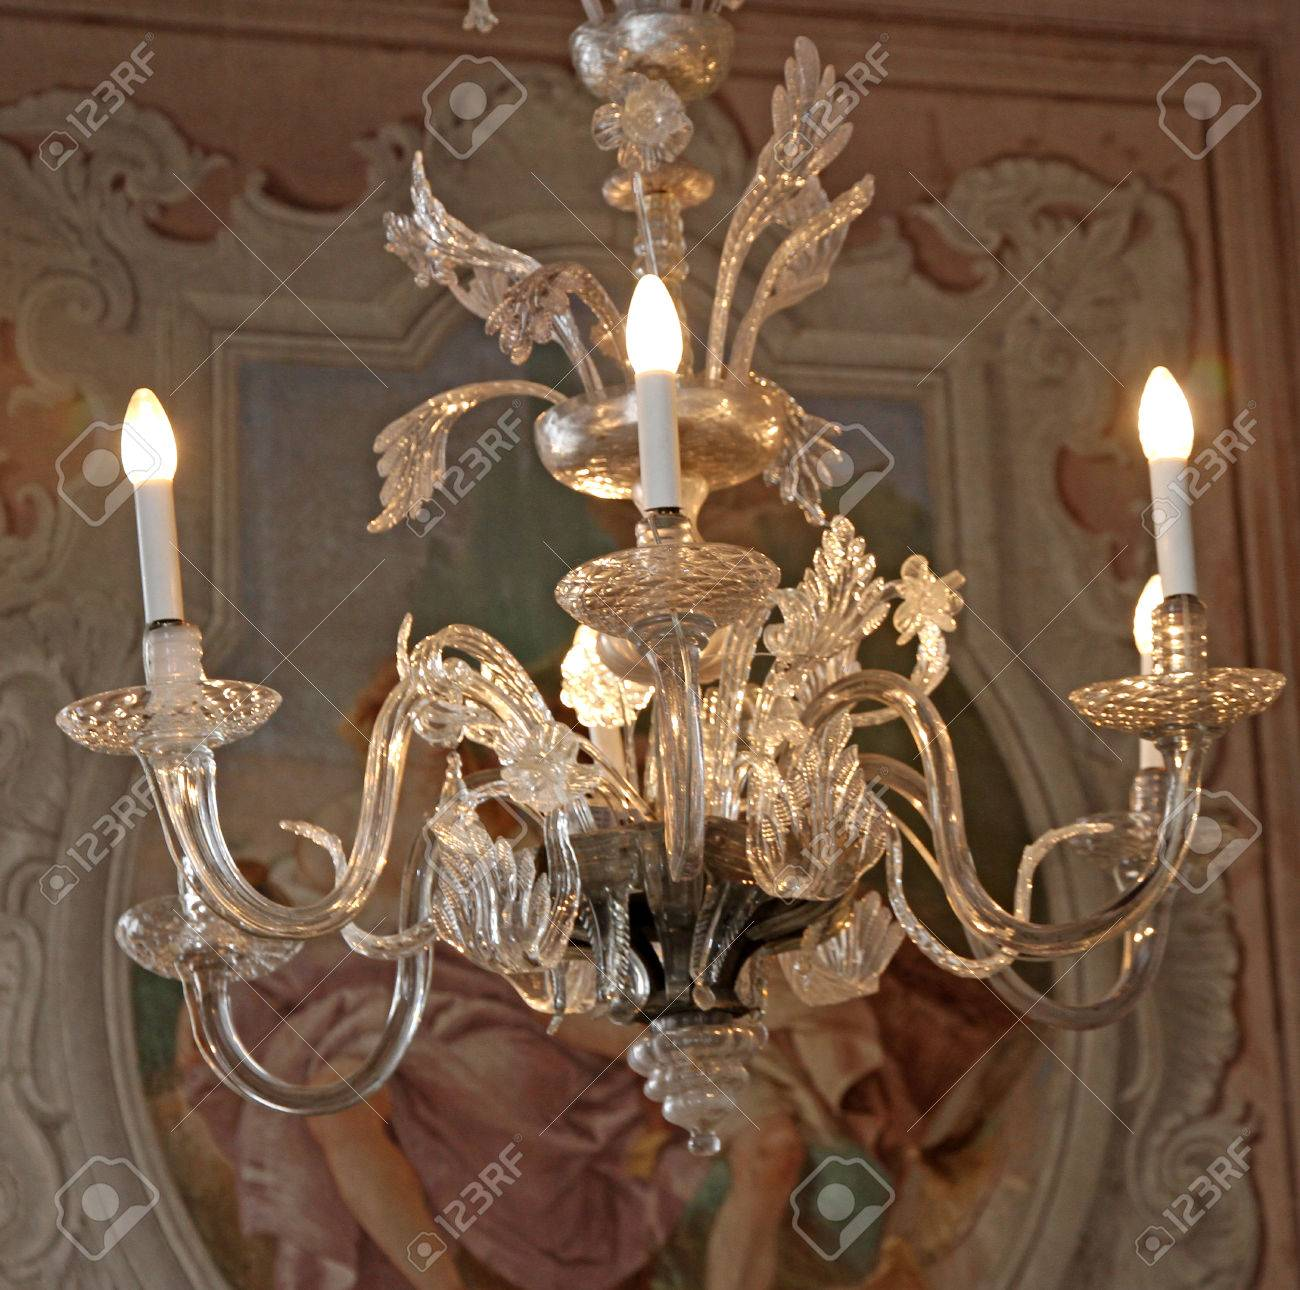 Expensive Crystal Chandelier Made With Murano Glass On The Ceiling ...